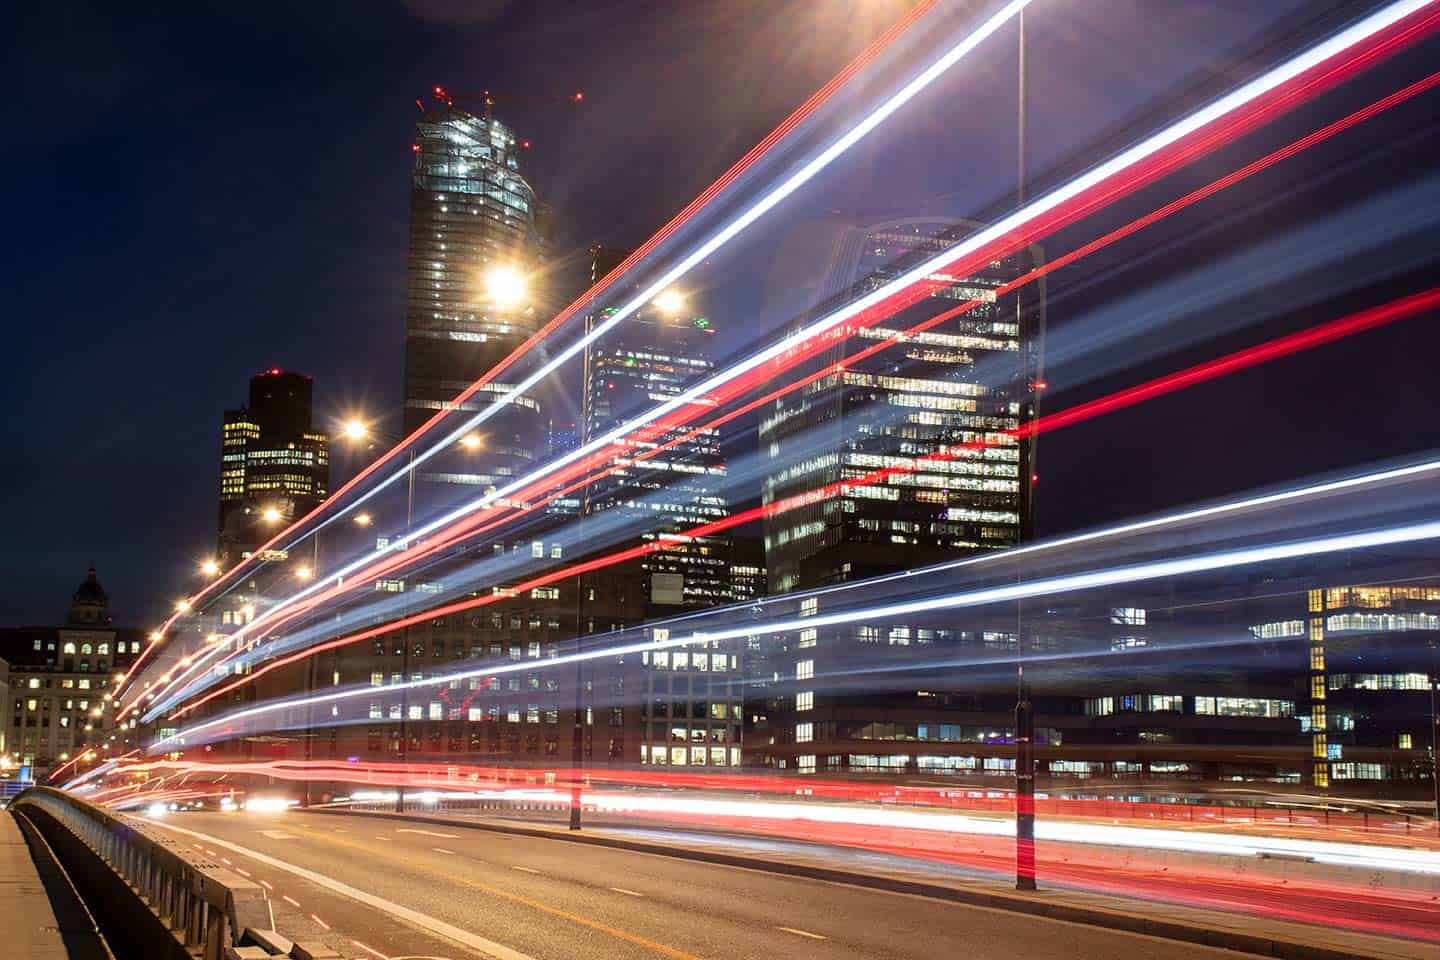 Image of a bus crossing London Bridge at night